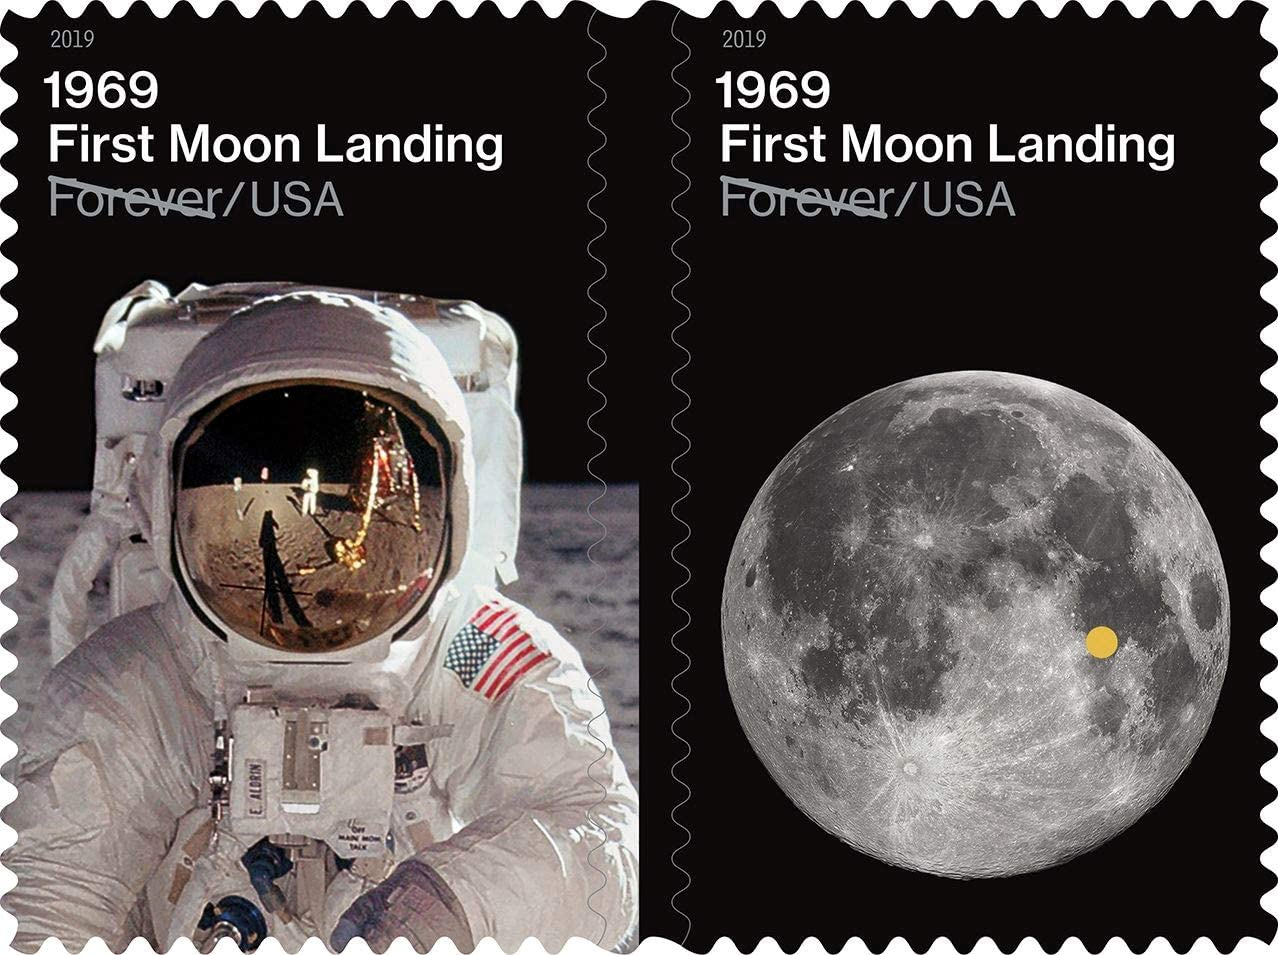 2019 1969 50th Anniversary of the Moon Landing Forever Sheet of 24 Stamps Scott 5399-5400